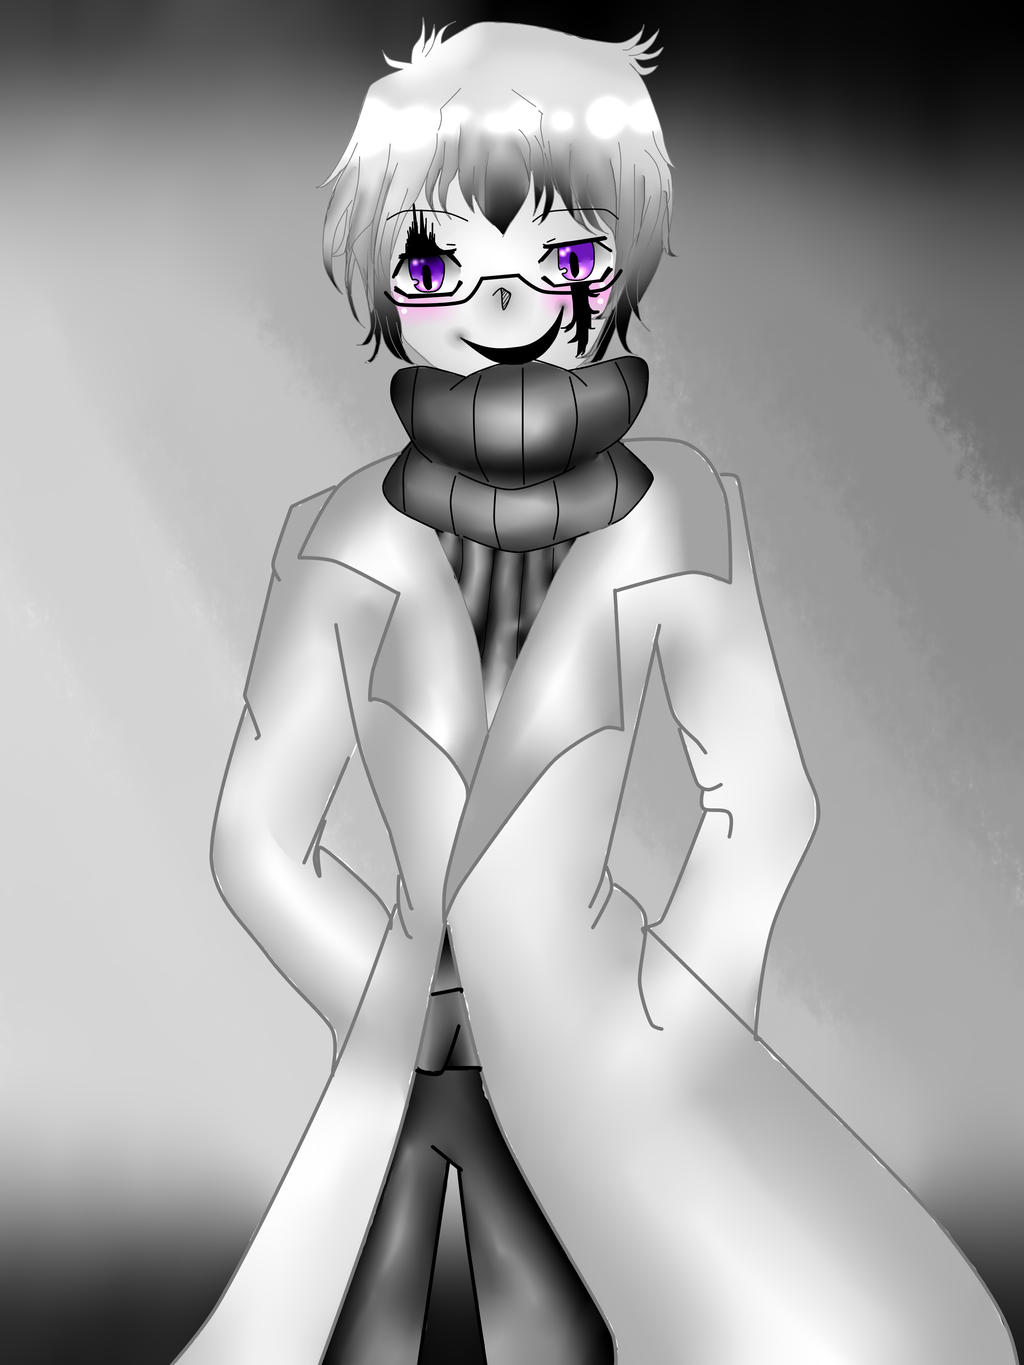 Anime W.D. Gaster [Made with PC Mouse] by Shinkomi